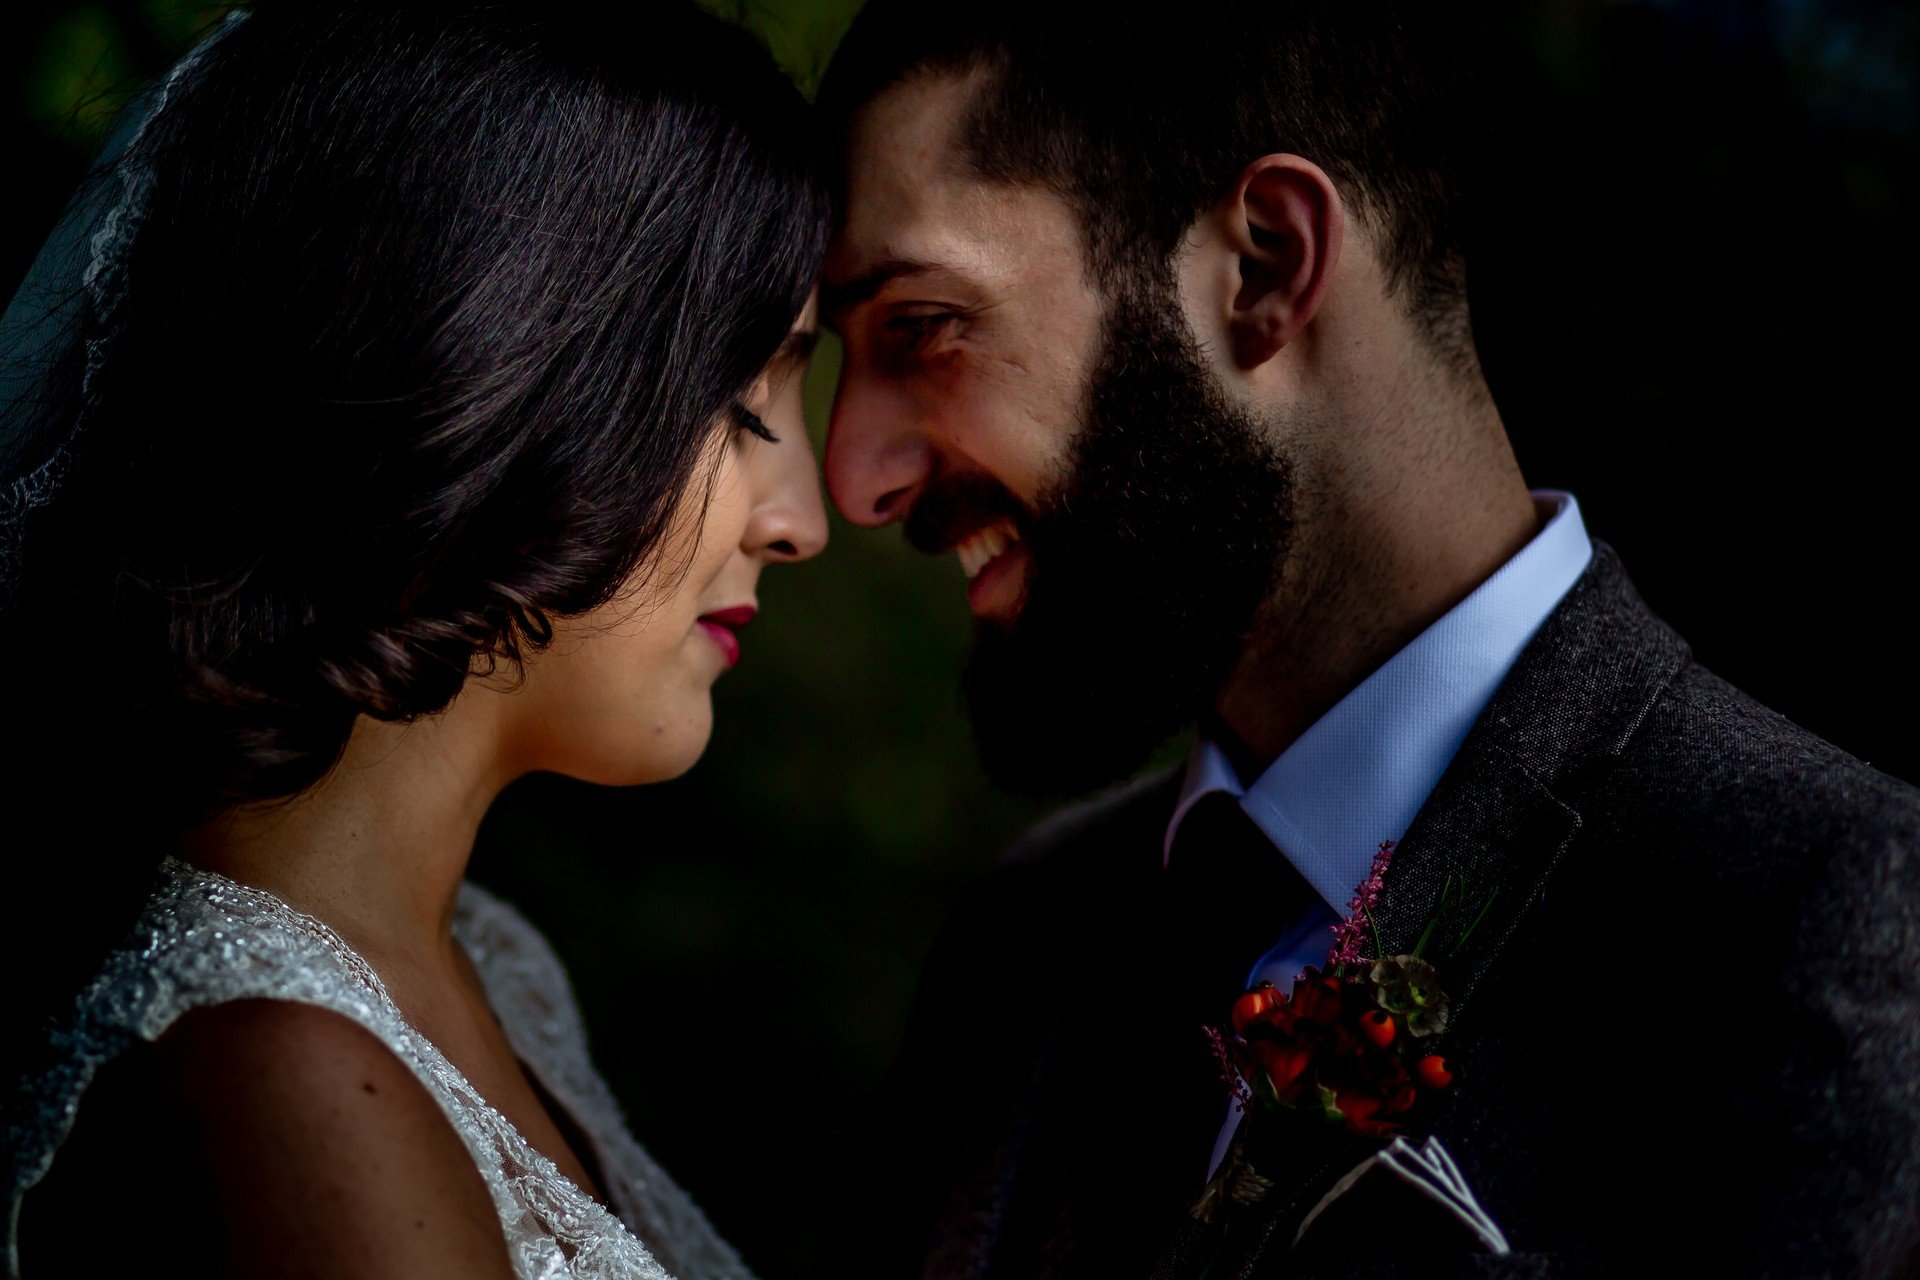 Bride and Groom having a moment together touching foreheads